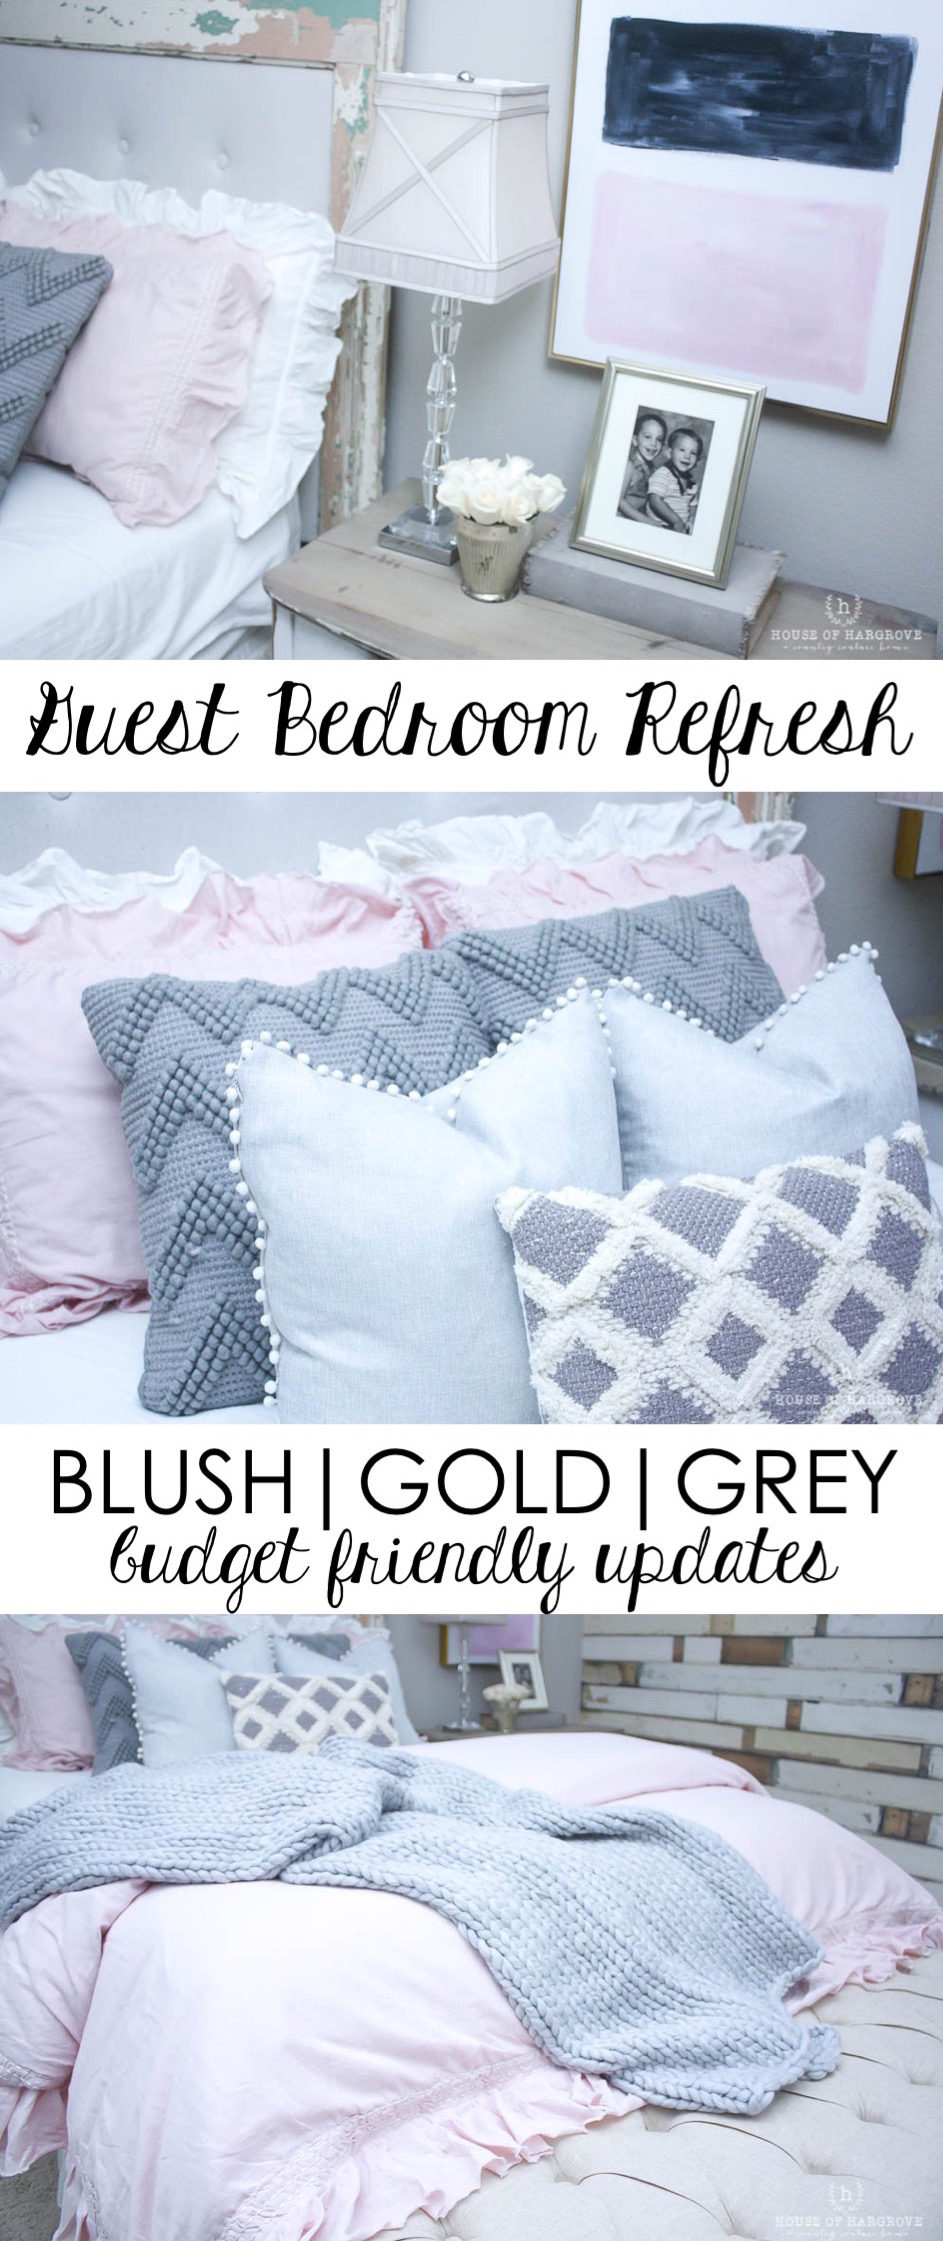 Guest Bedroom Refresh: Blush, Grey & Gold - House of Hargrove on gold and gray walls, gold and grey car, gold and grey walls, gold and grey kitchen, vintge mint and gray bedroom, gold and grey boat, gold and grey art, gold and grey color scheme, gold and grey office, gold and gray throw pillows, gold and grey decor, gold and grey lamps, black and purple bedroom, gold coral mint bedroom, gold and grey interior, gold and gray living room, gold and grey duvet, gold and brown living room decor, gold and gray bathroom, gold and grey rugs,